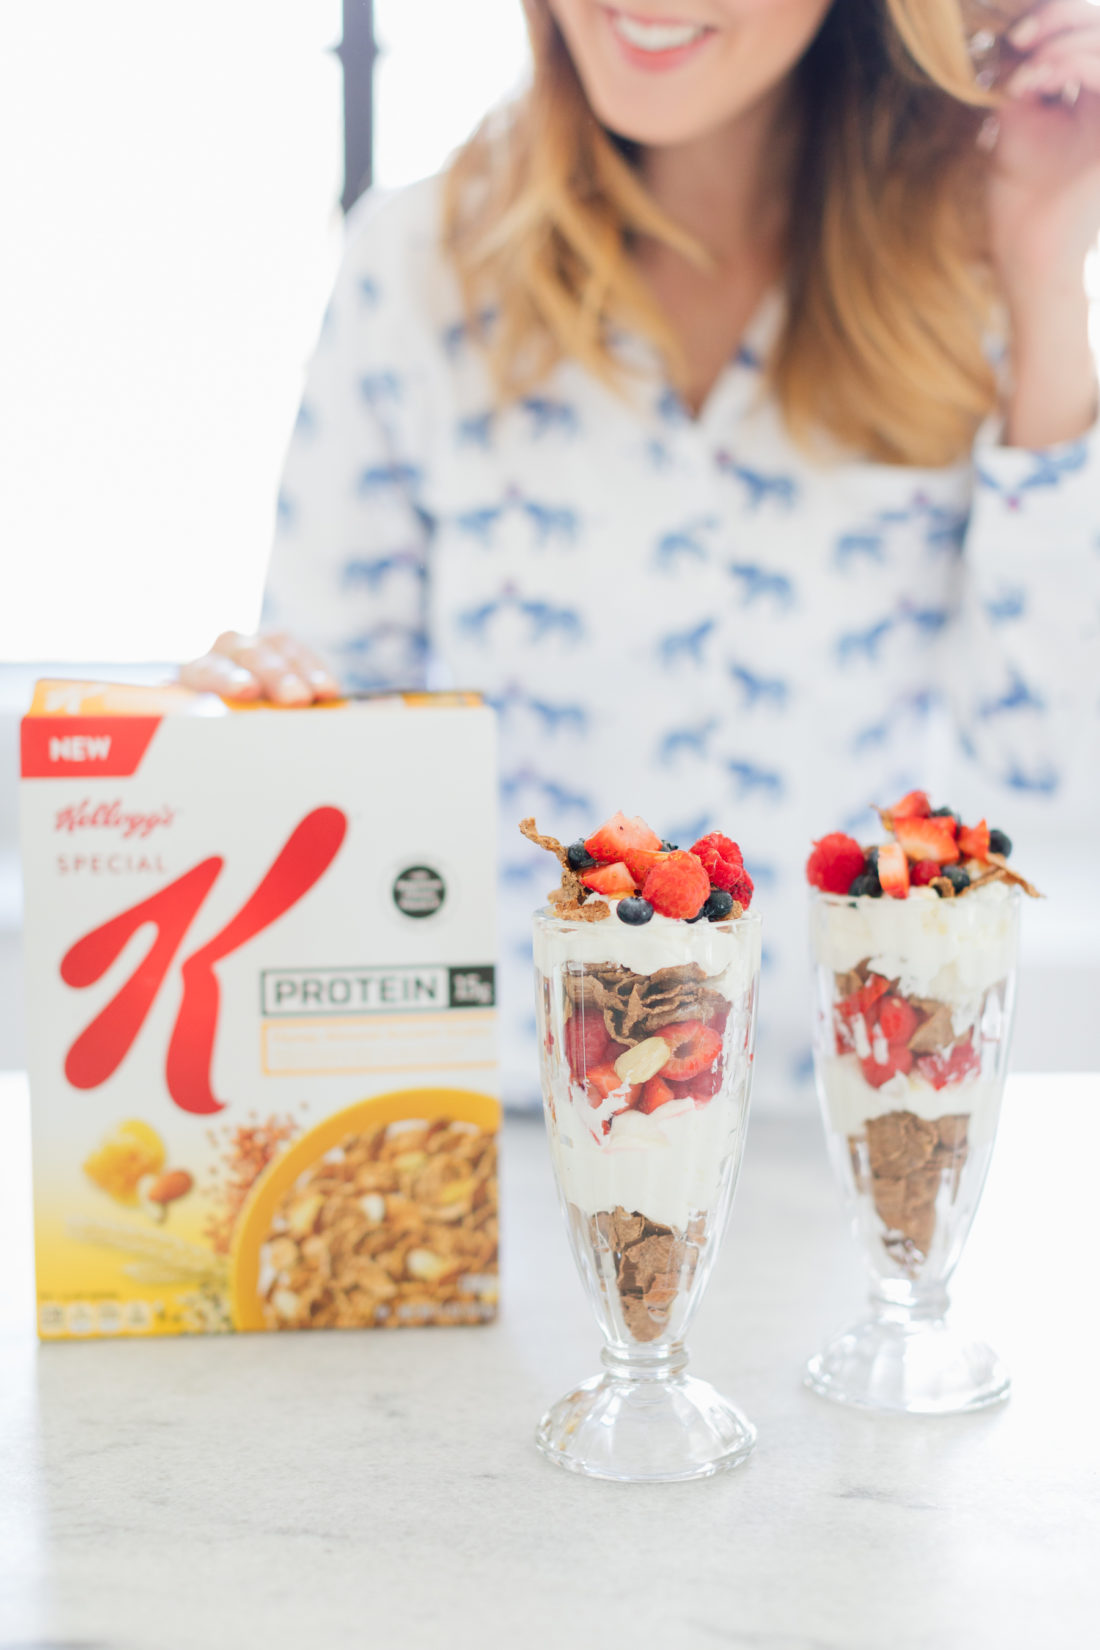 Eva Amurri Martino of Happily Eva After shows off her yogurt parfaits with Special K Ancient Grains